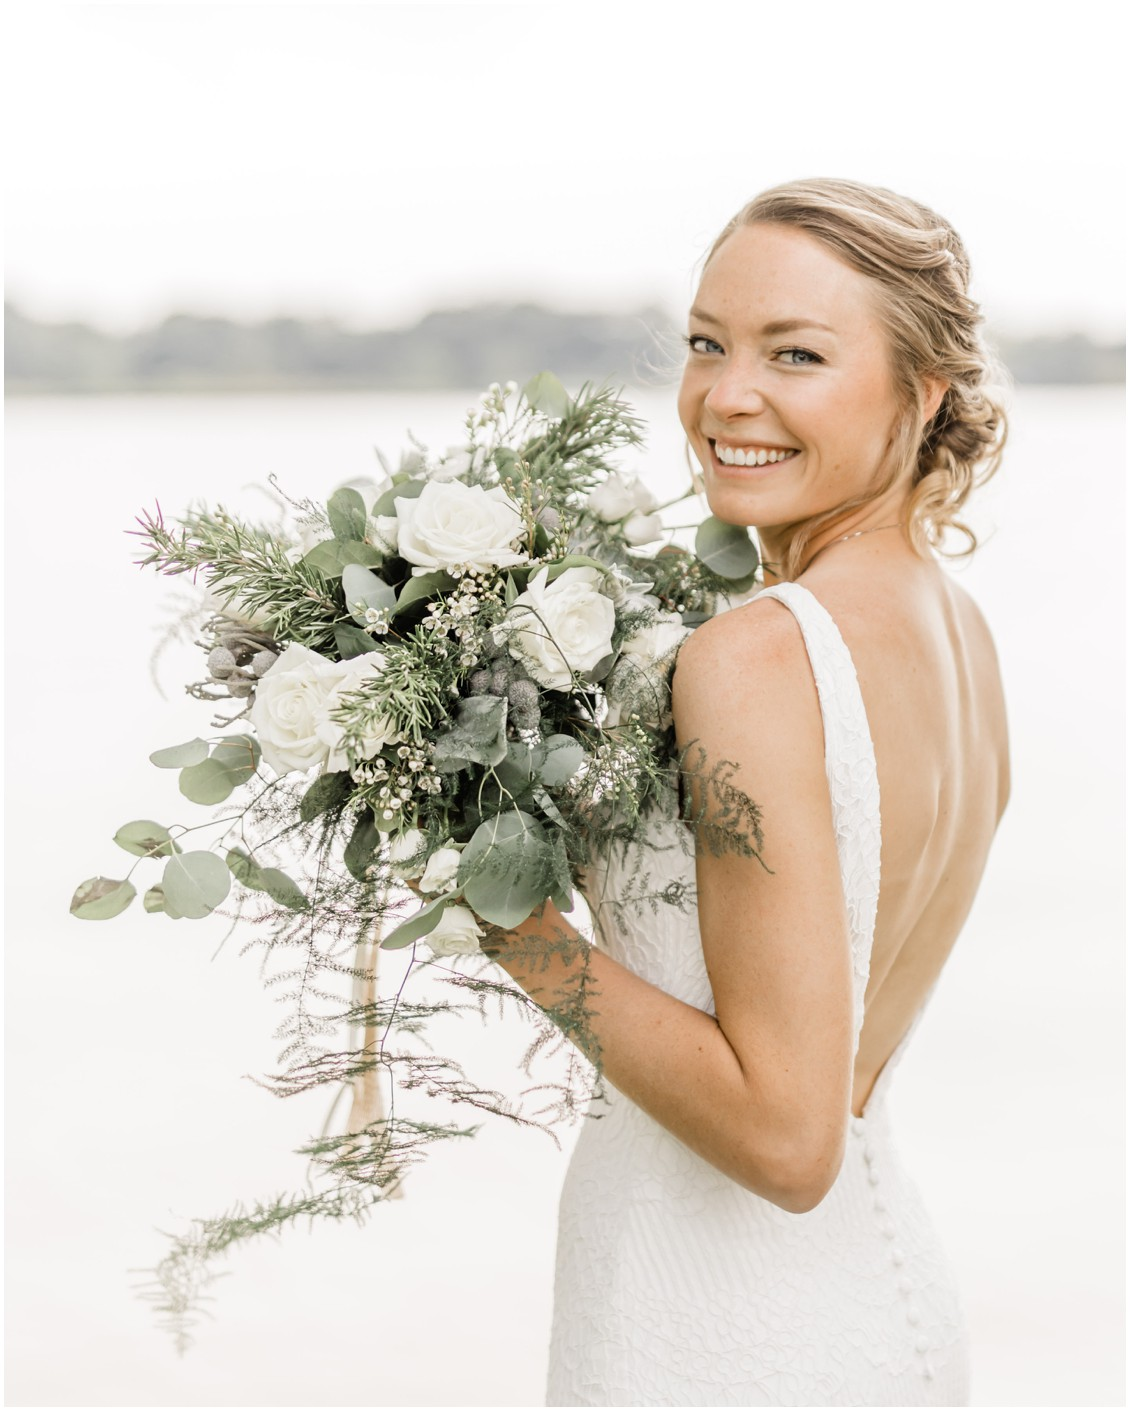 Backless wedding gown | Bride with natural bouquet | My Eastern Shore Wedding |